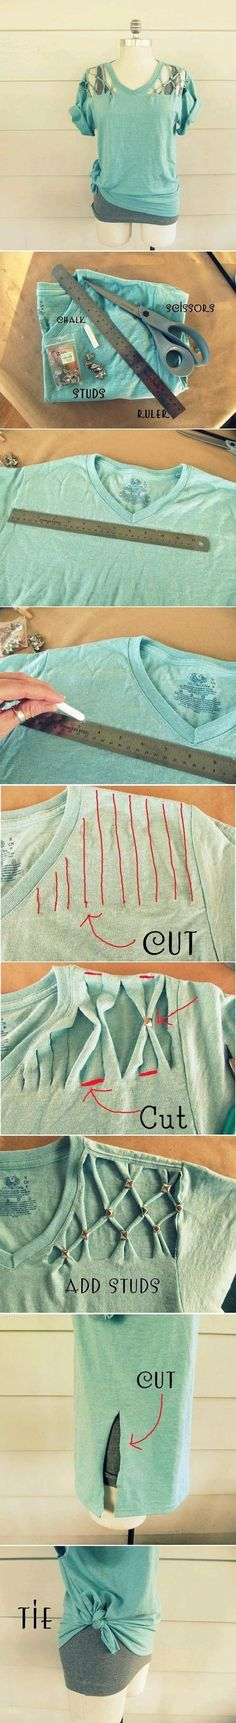 #DIY Cool Studded T-Shirt  #Project